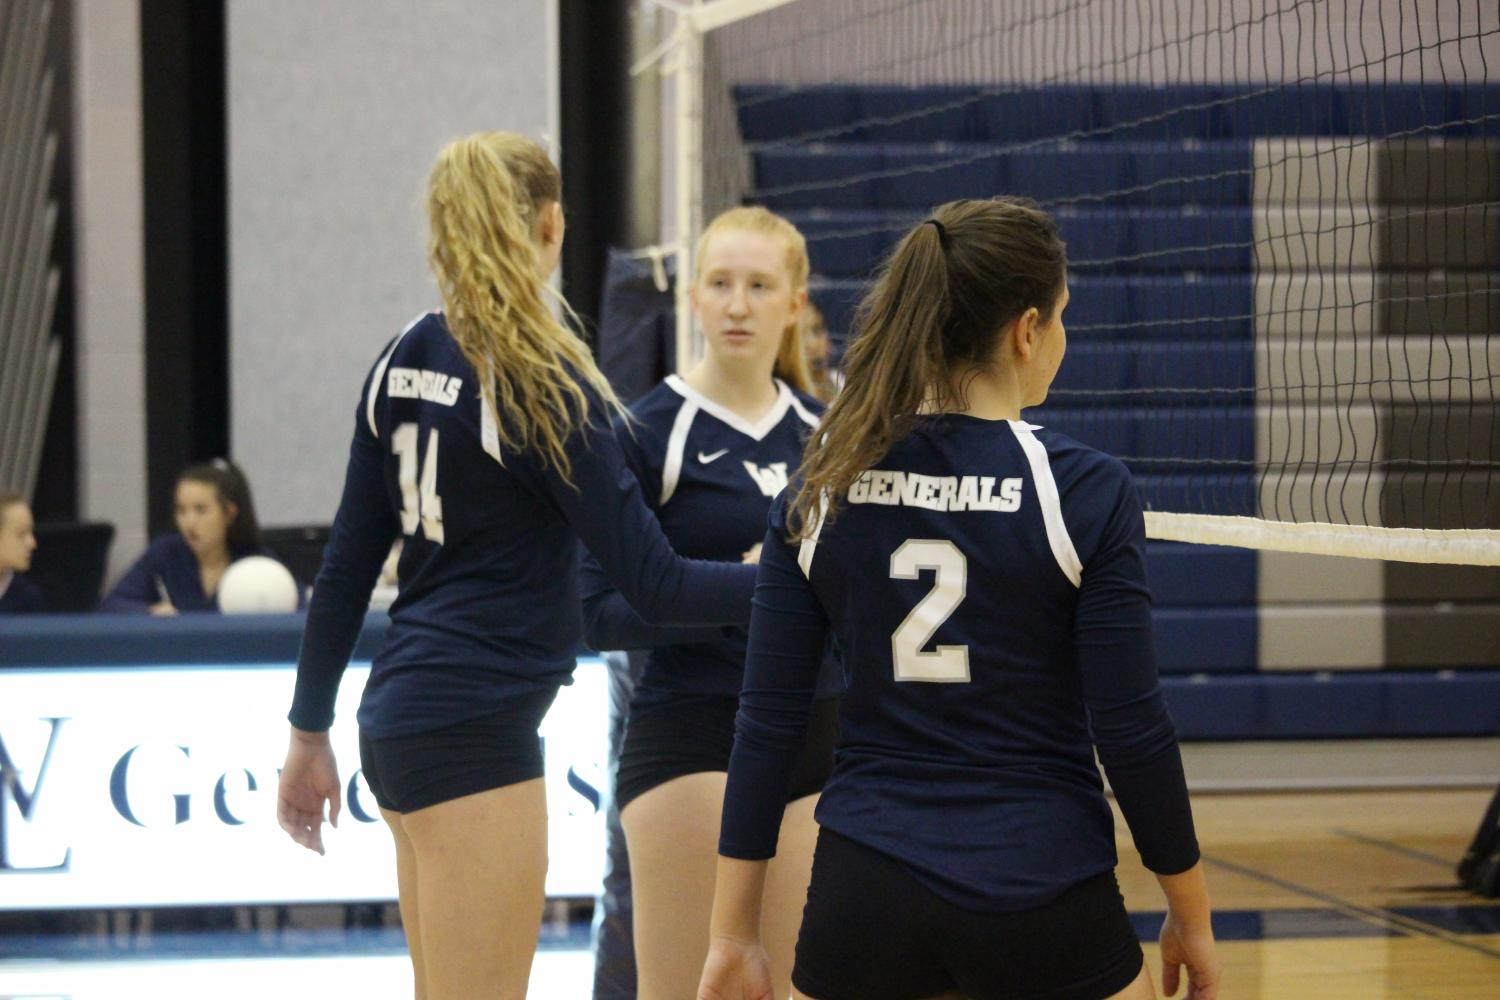 Varsity volleyball players Genevieve Bernard, Kate Sheire and Hannah Demas stand at the net in between plays.